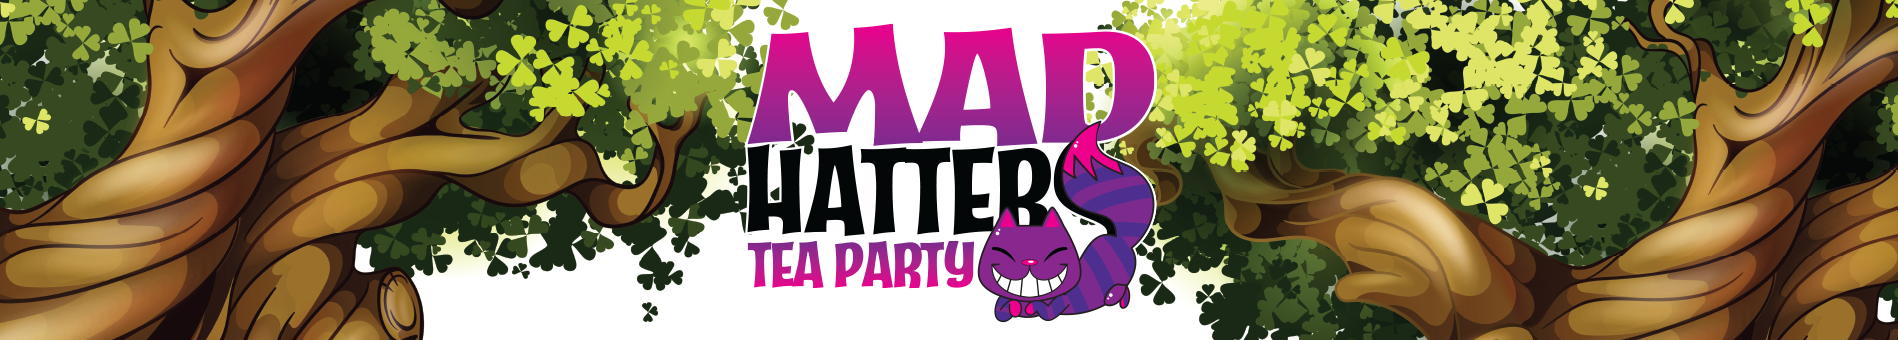 An image for Mad Hatter Tea Party